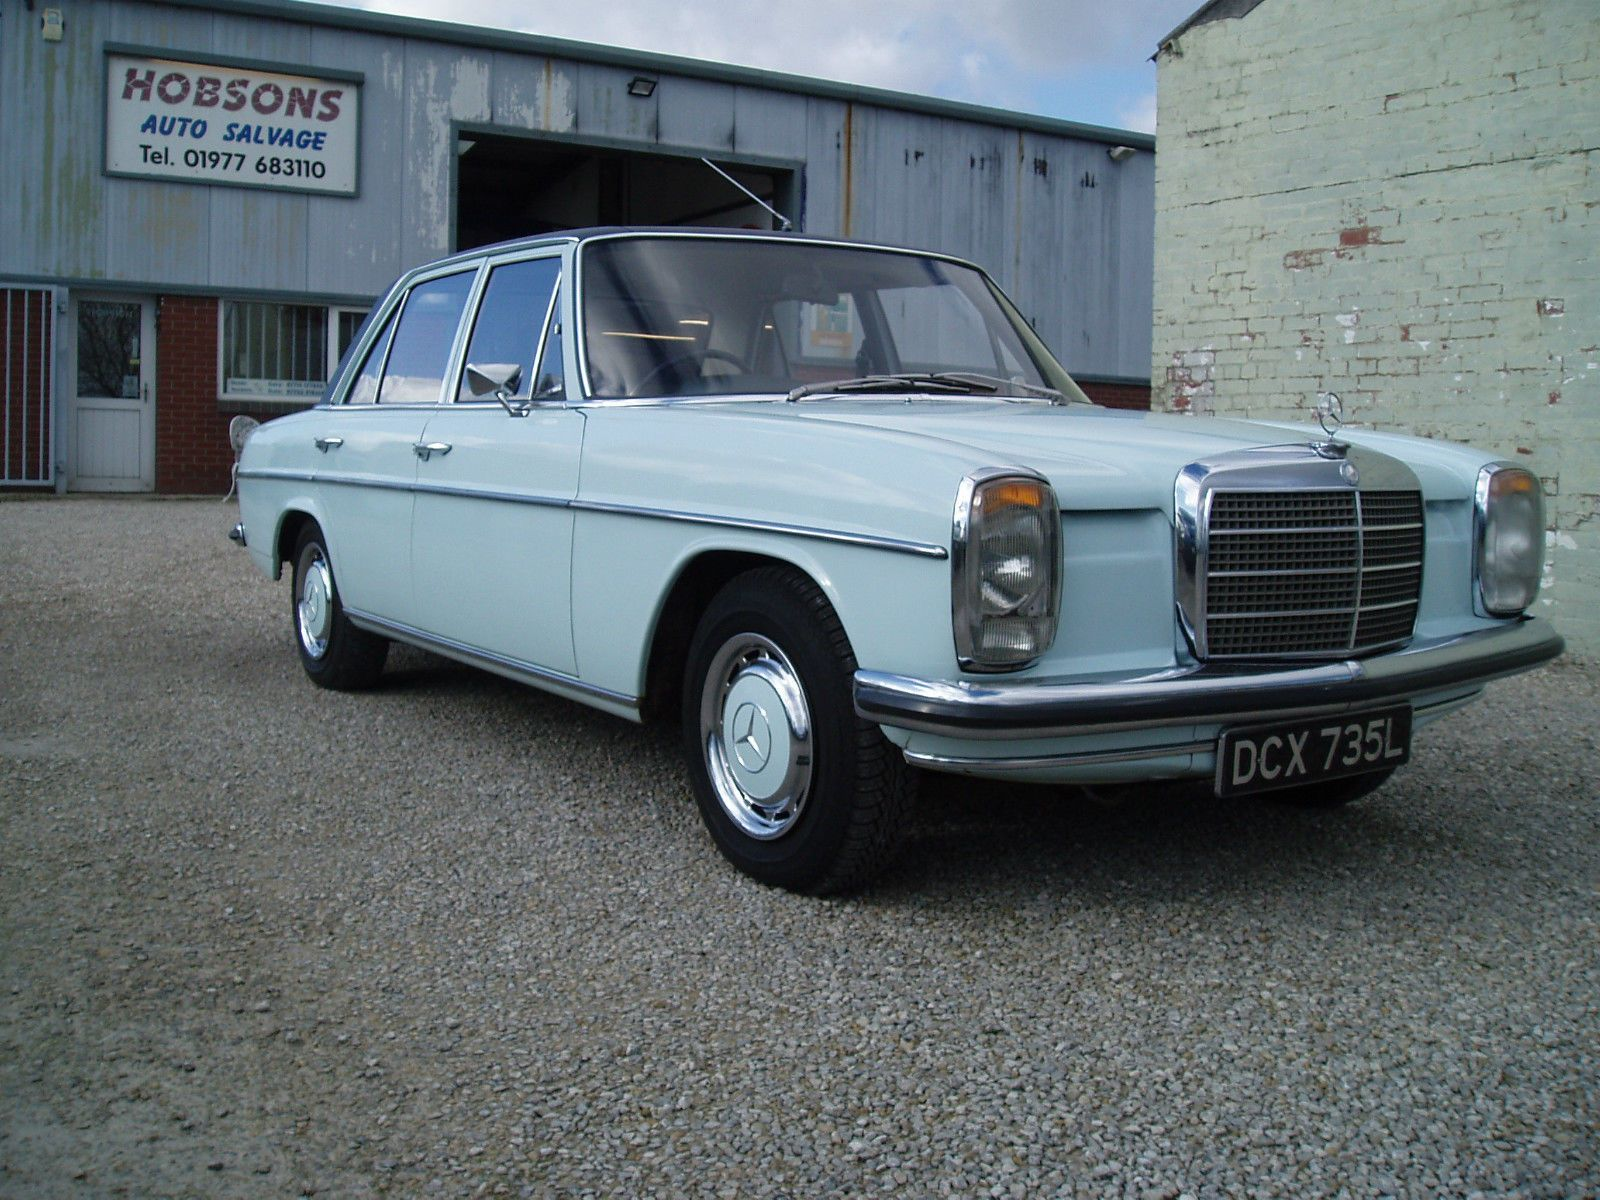 Mercedes benz w115 220 auto 1972 benz mercedes benz and for 1972 mercedes benz